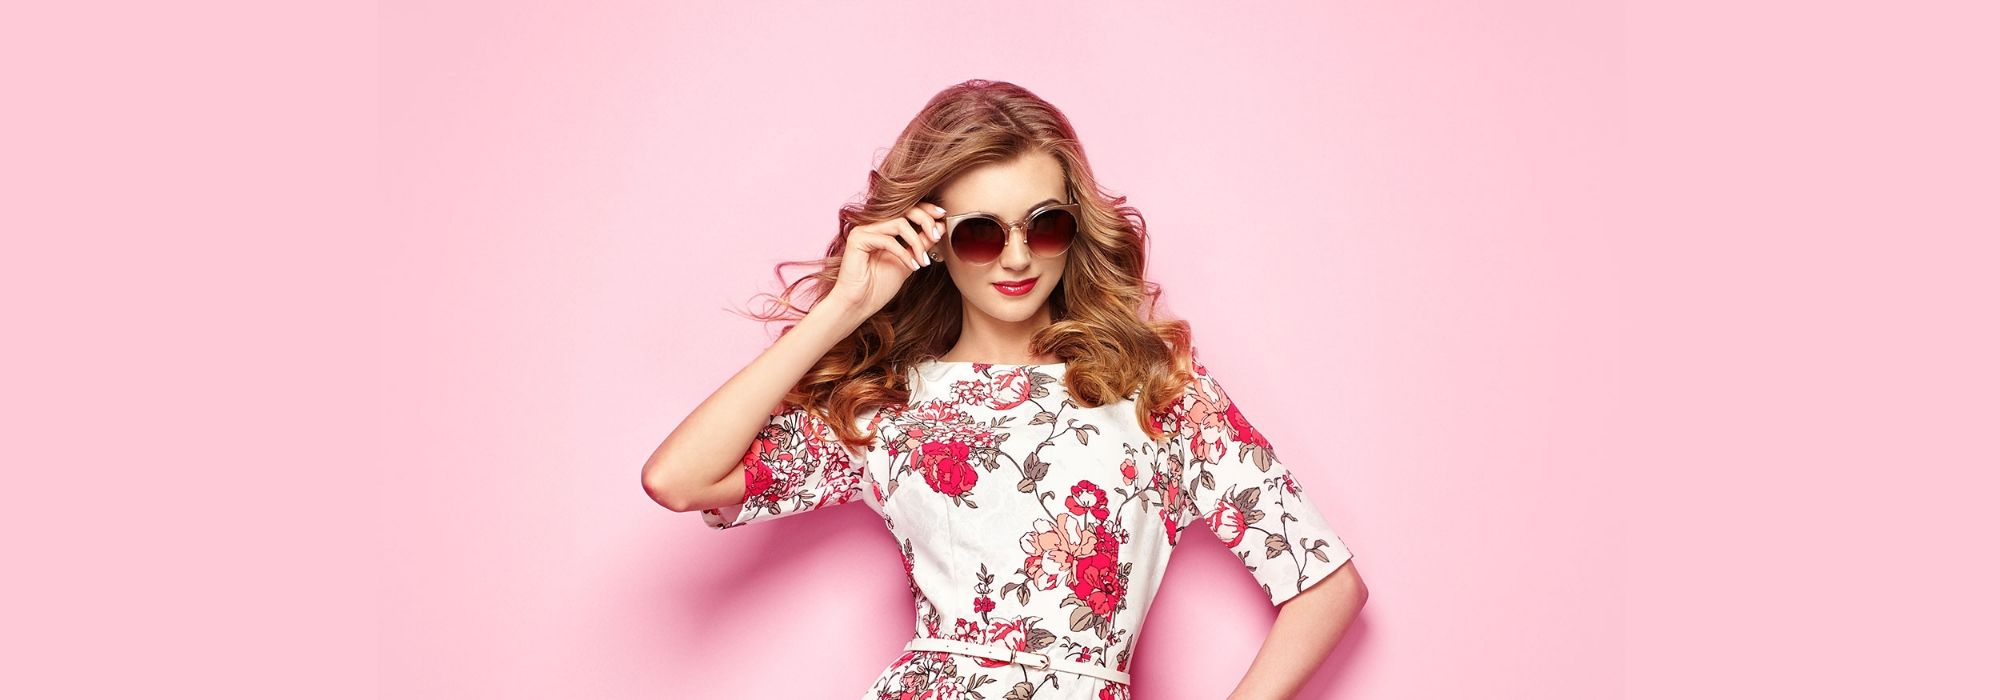 Woman with sunglasses on